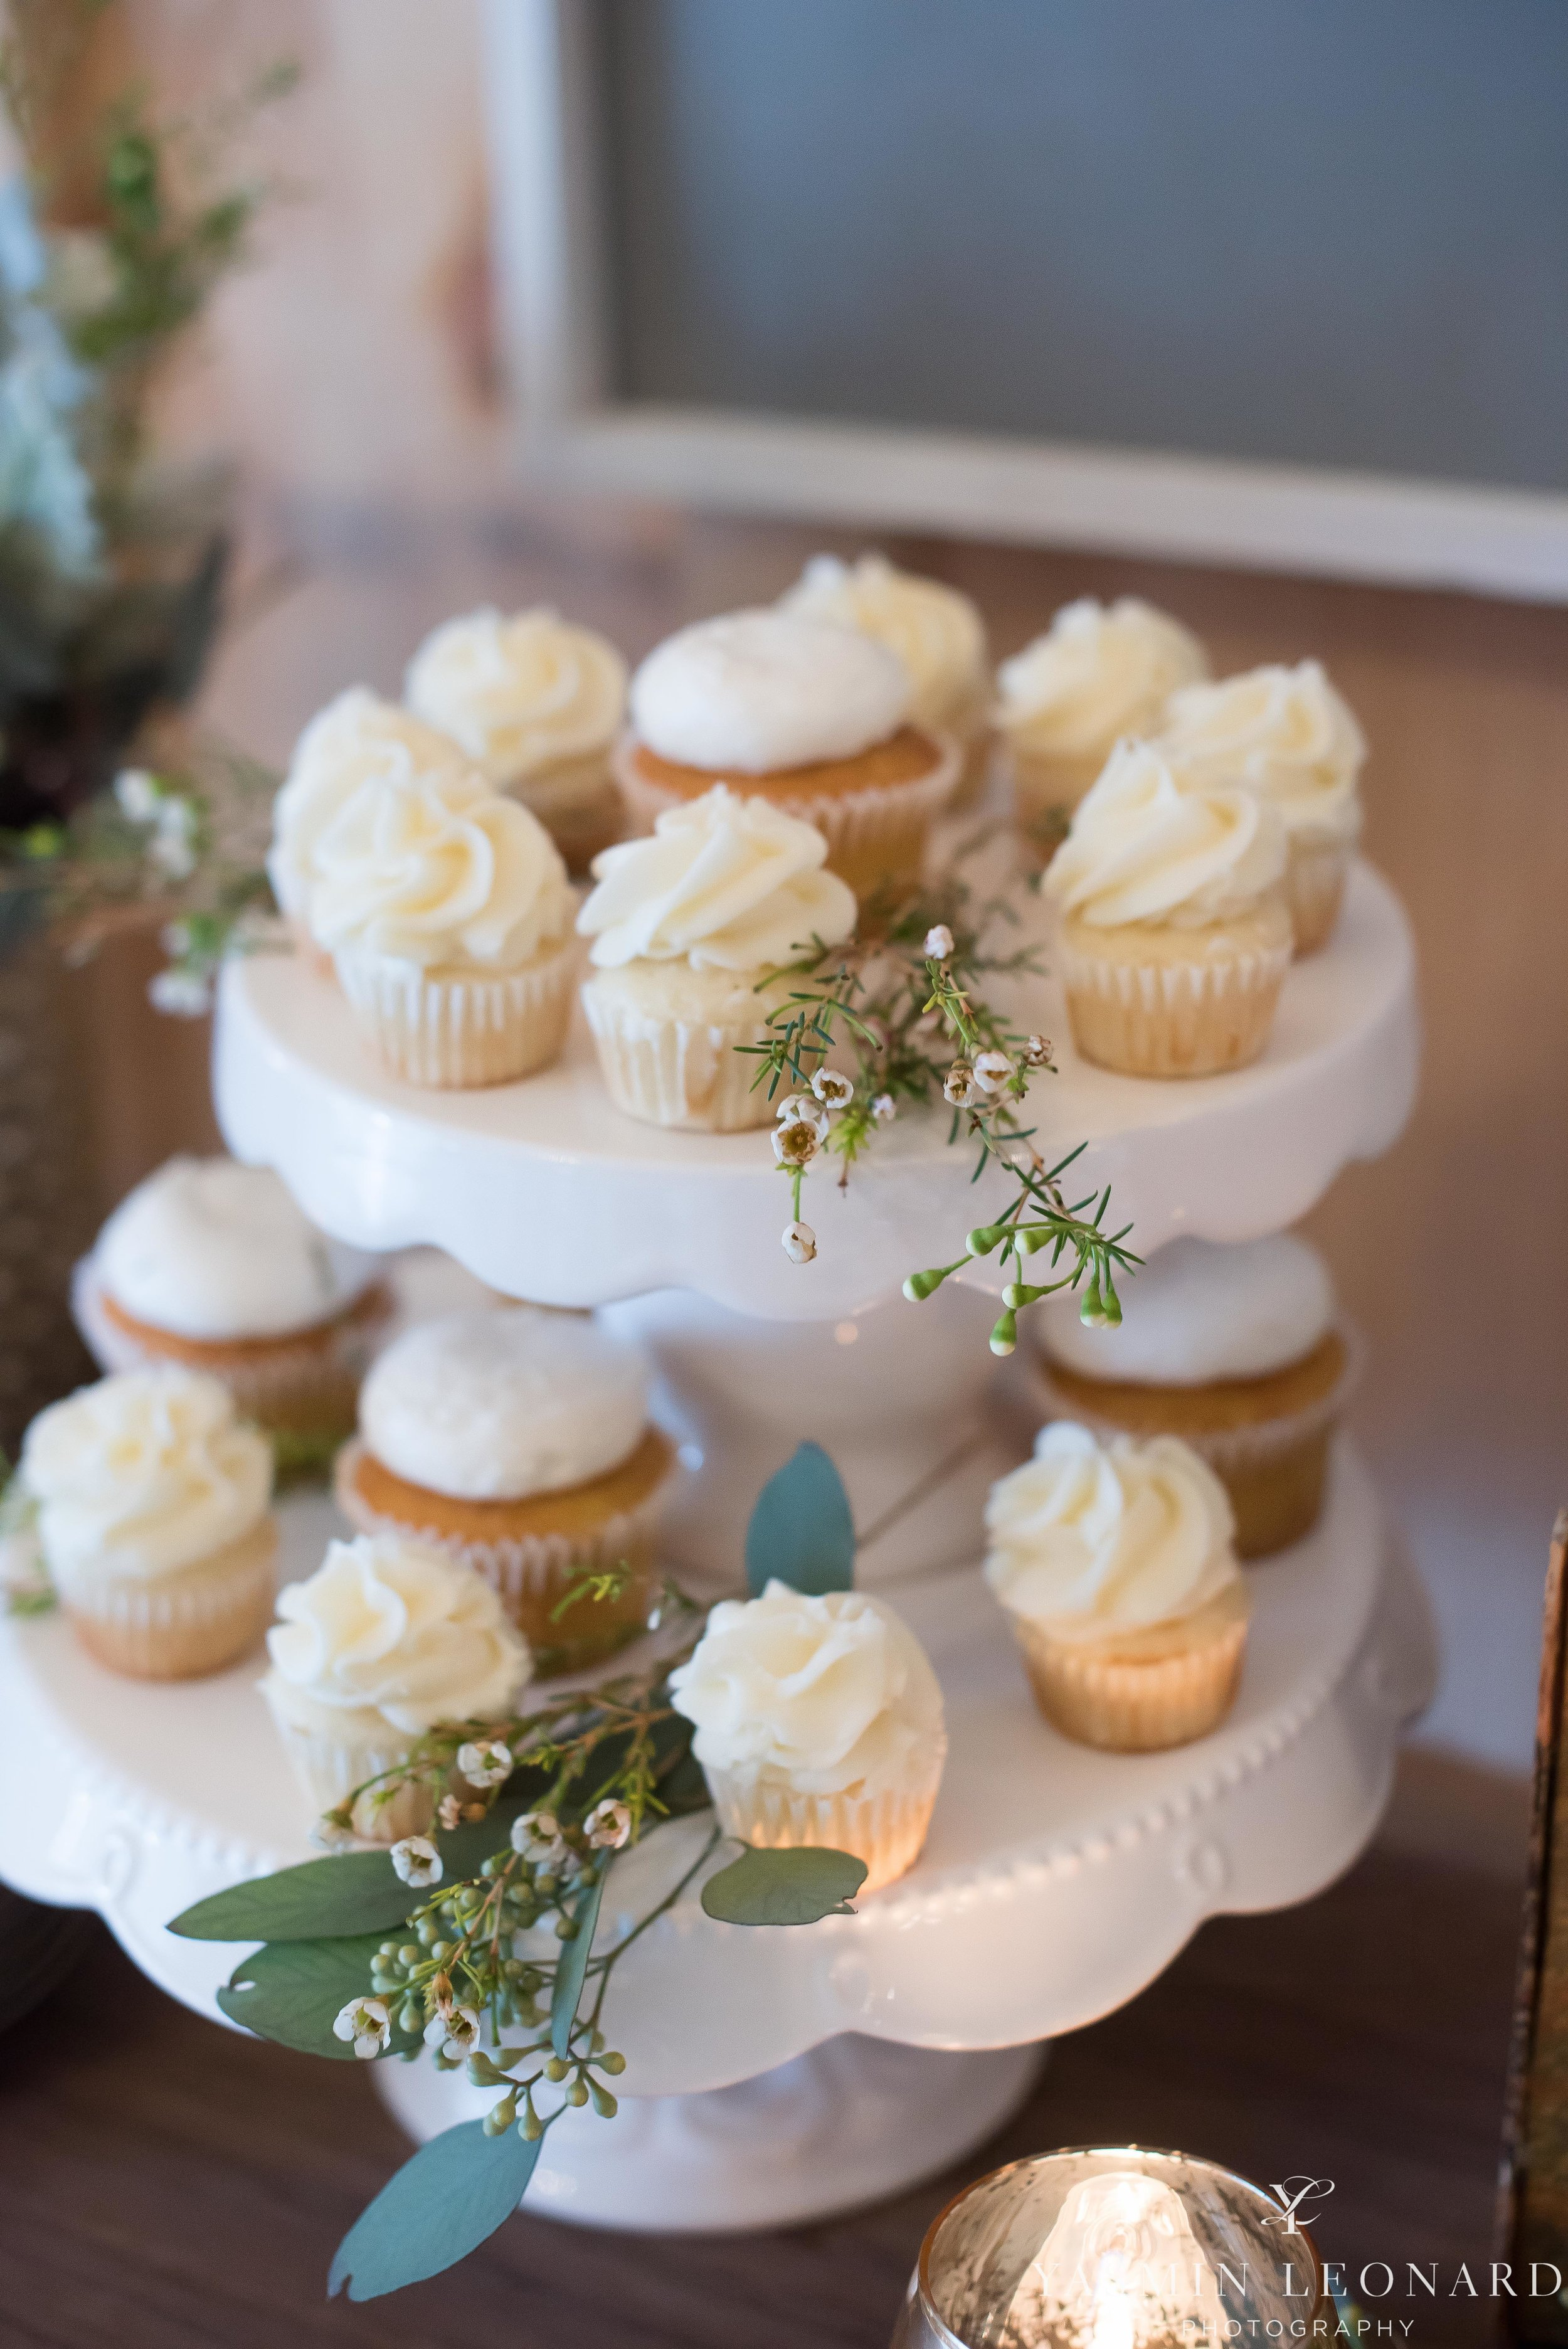 Old Homeplace Vineyard - Grits and Glitter - Dashing Dames Bridal Boutique - Just Priceless - Yasmin Leonard Photography - High Point Weddings - NC Weddings - NC Wedding Venues - High Point Jewelers - NC Wines - NC Vineyards - Cupcake Cuties-68.jpg